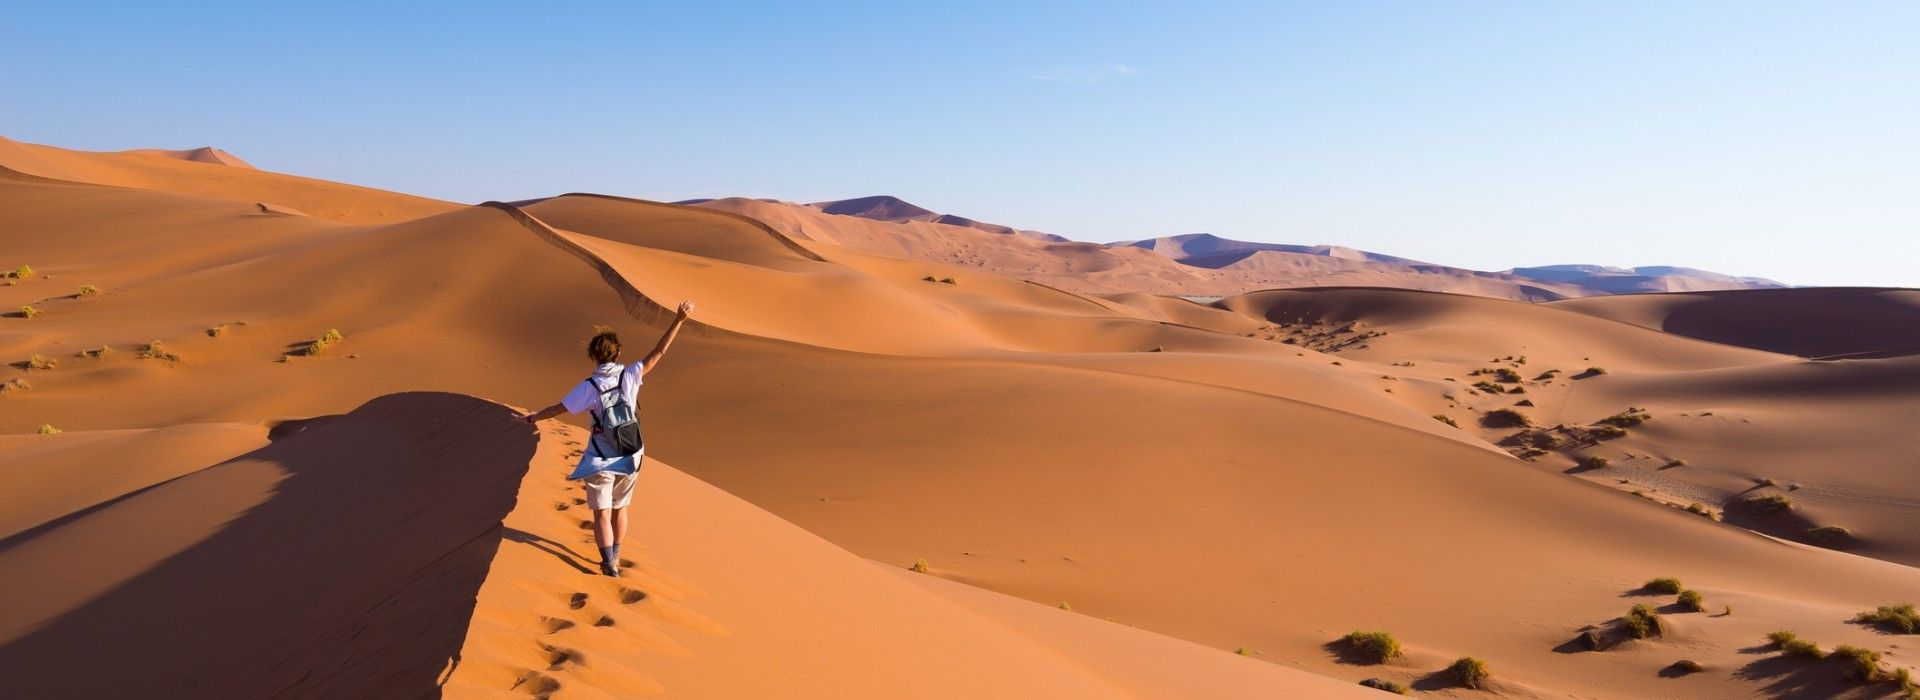 Sightseeing, attractions, culture and history Tours in Namibia